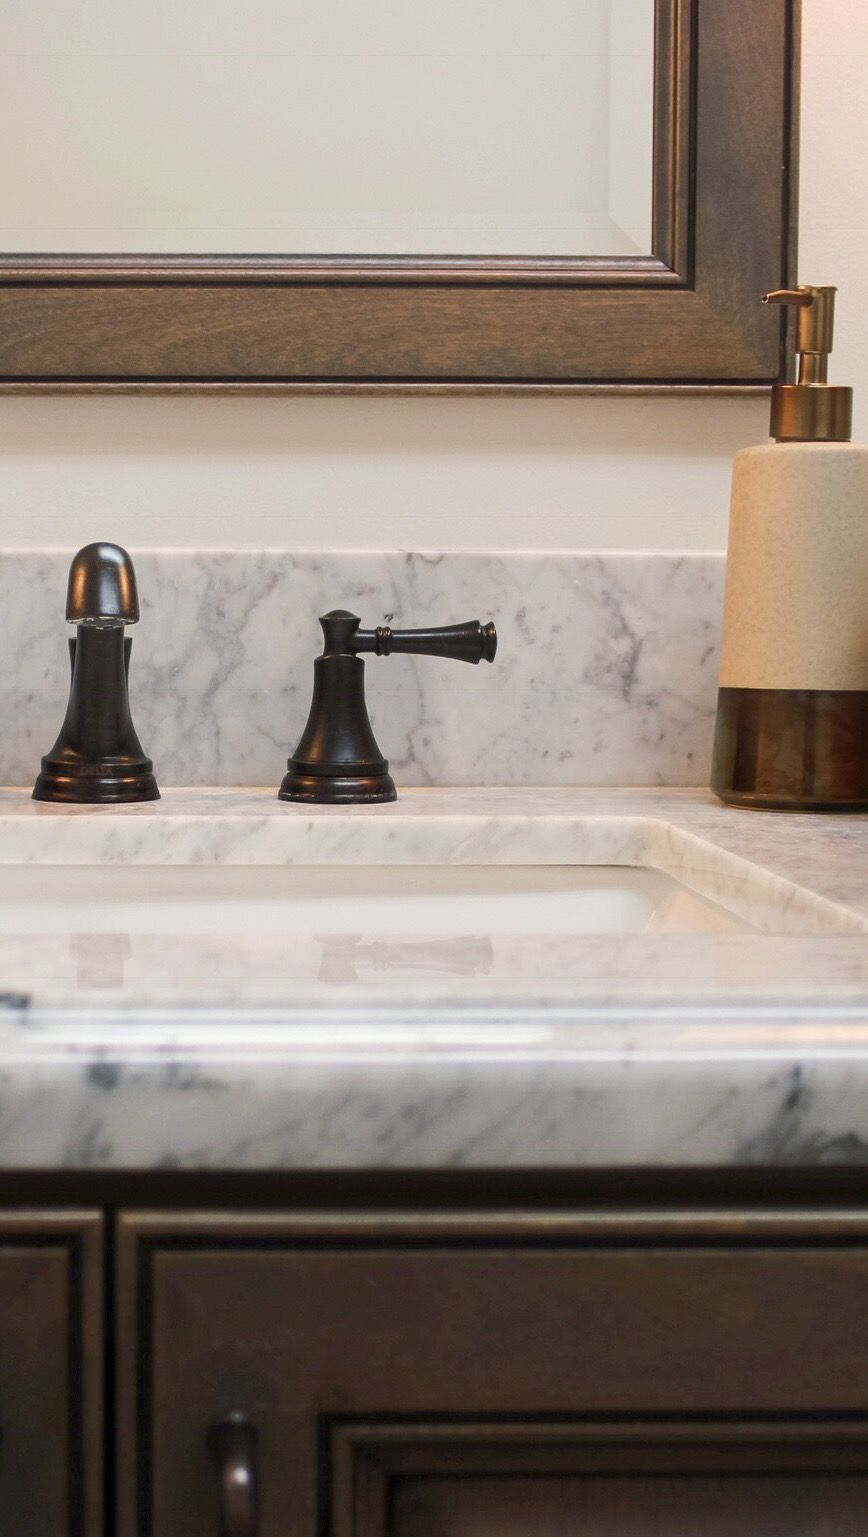 Carrera Marble Countertop With Soft Gray Cabinets And Oil Rubbed